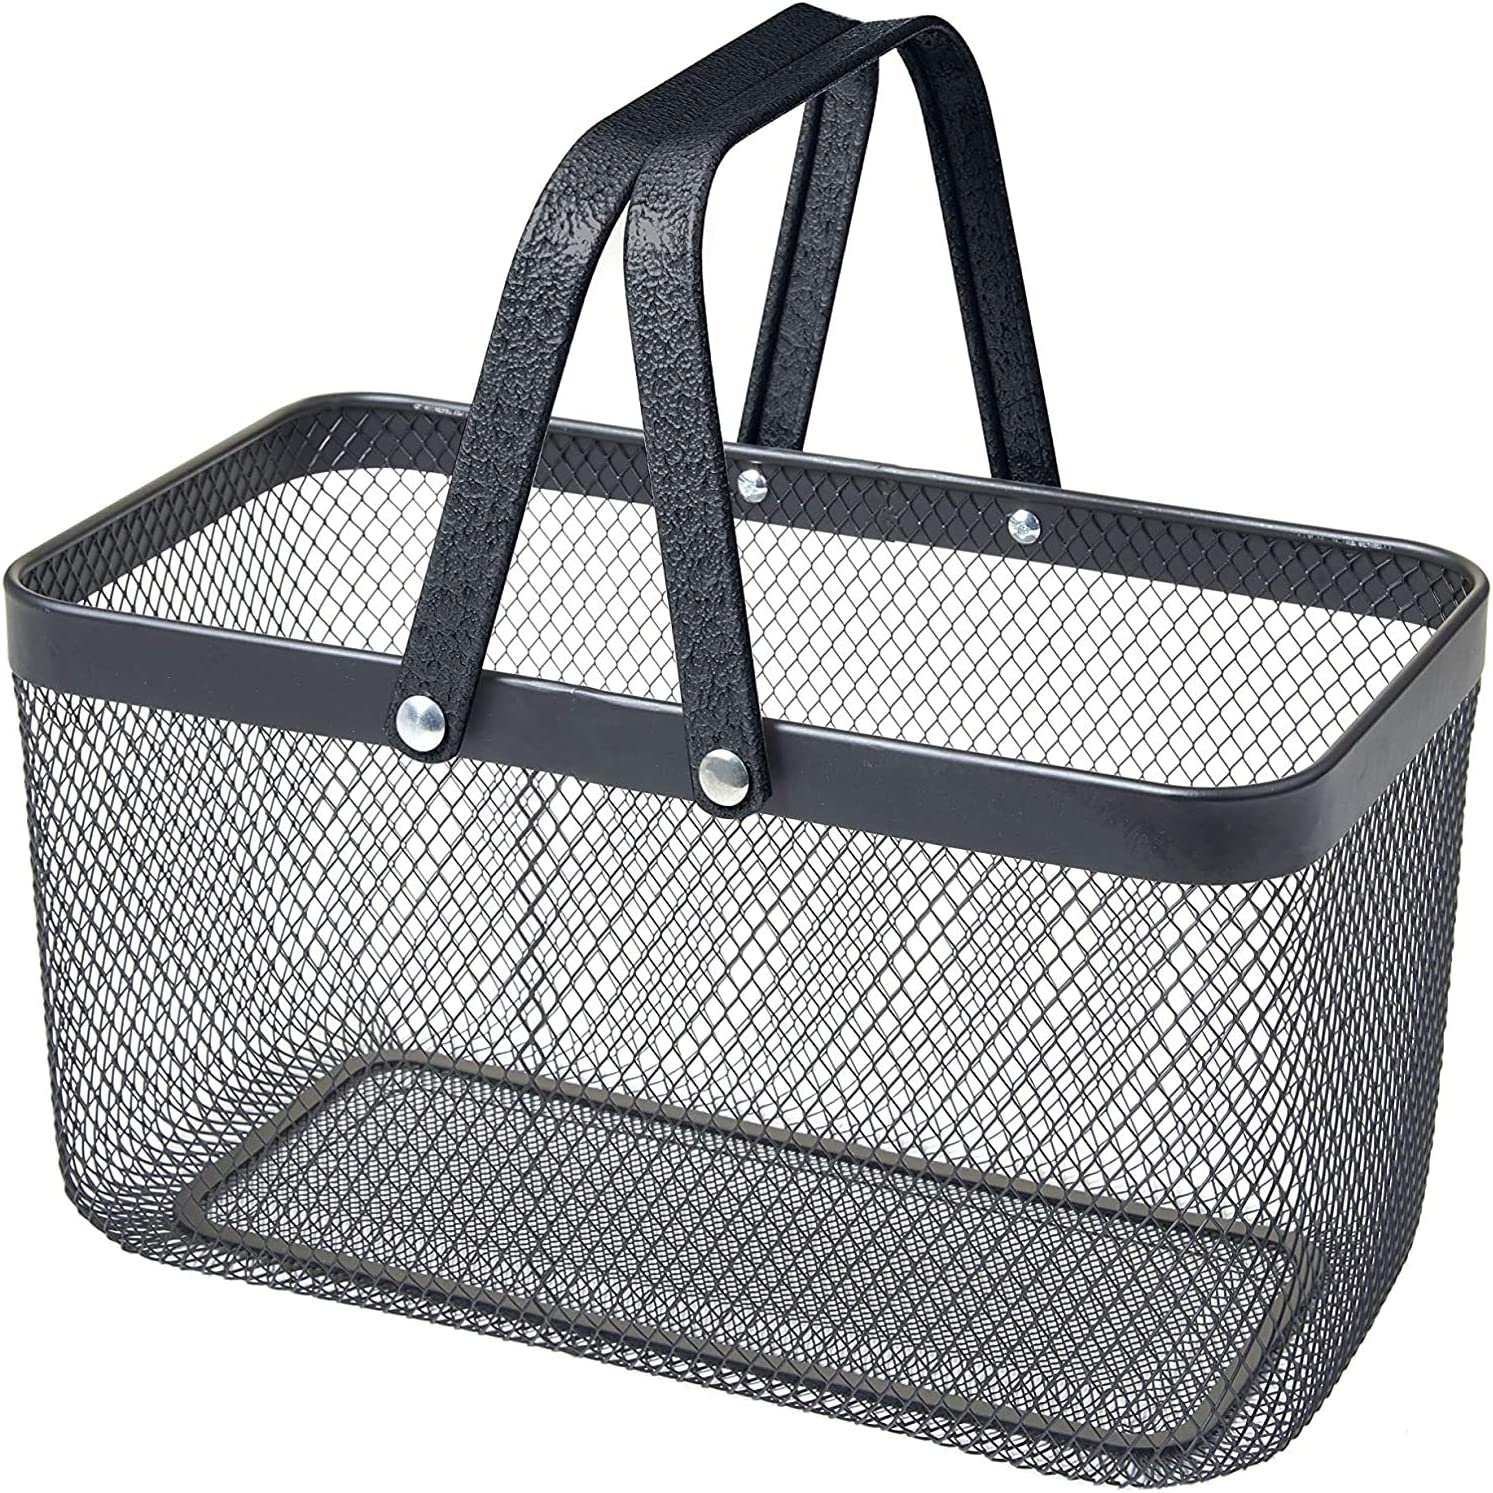 Nifty Solutions Decorative Square Bin. Mesh Black Color. Storage Basket with Handles, Large